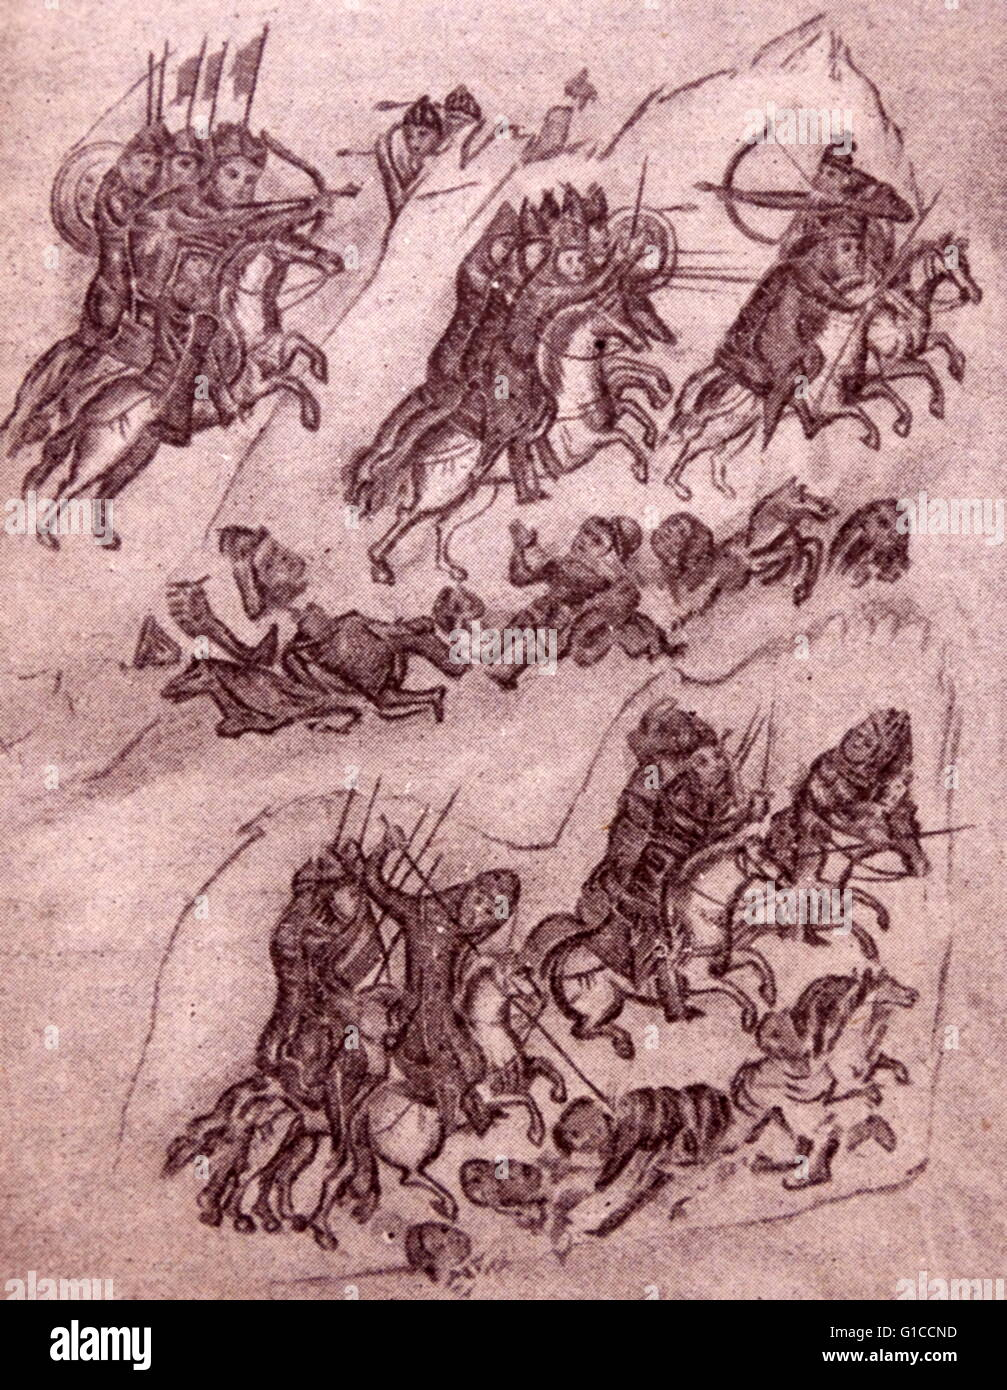 10th Century picture of a Bulgarian Route from an ancient Slavonian manuscript - Stock Image